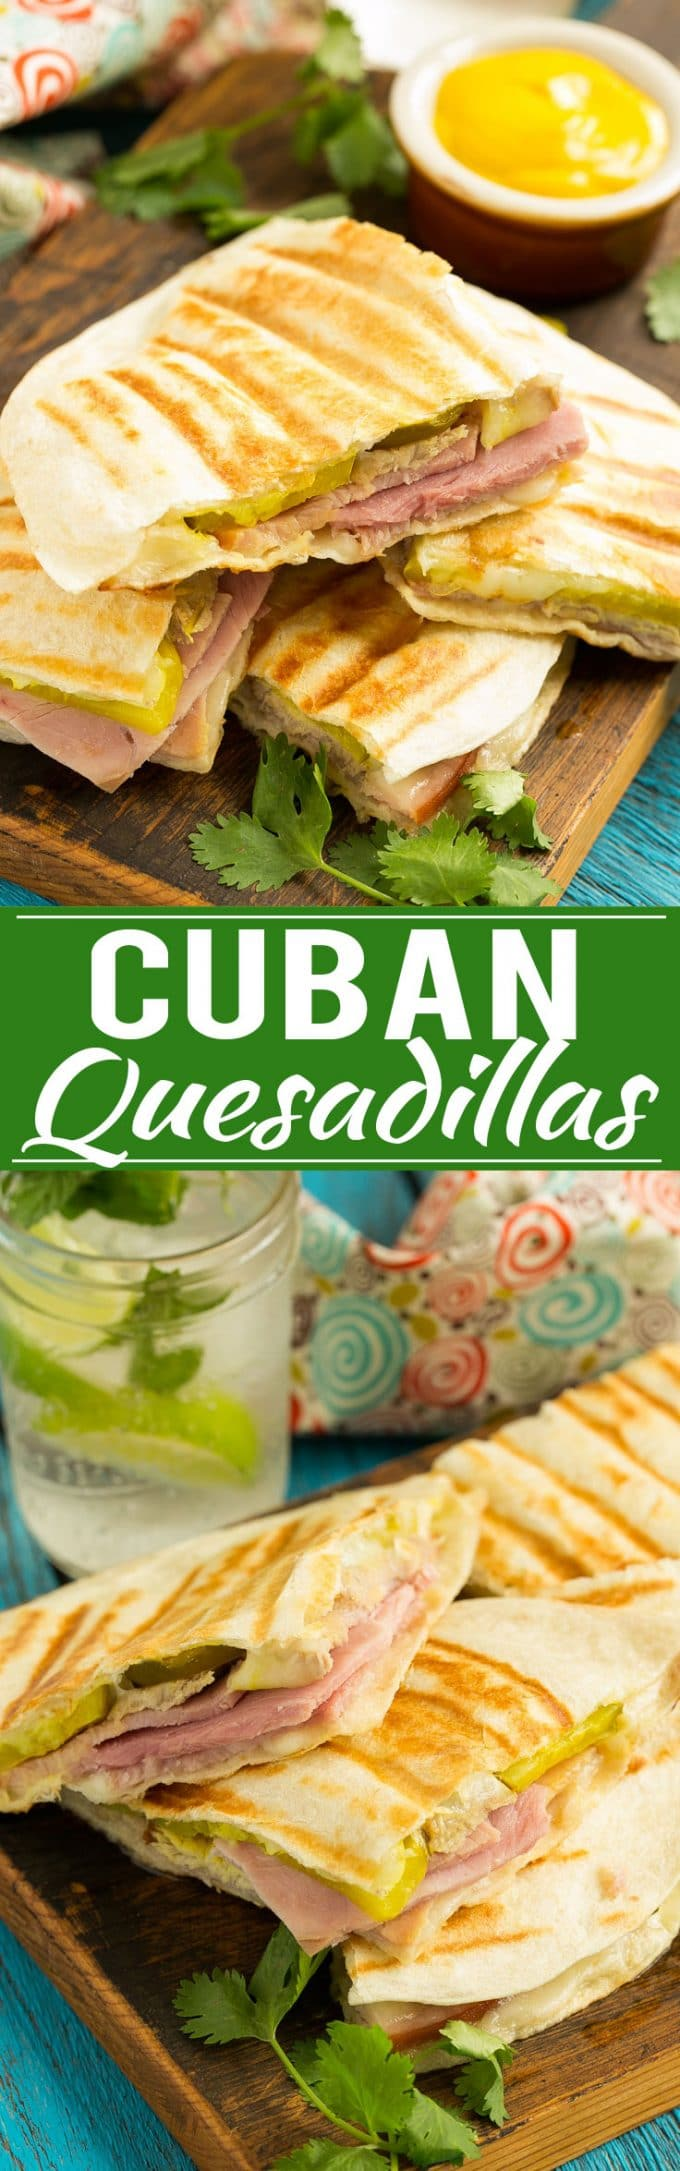 Cuban Quesadillas Recipe | Cuban Sandwich Quesadilla | Easy Cuban Quesadilla | Best Cuban Sandwich Quesadilla